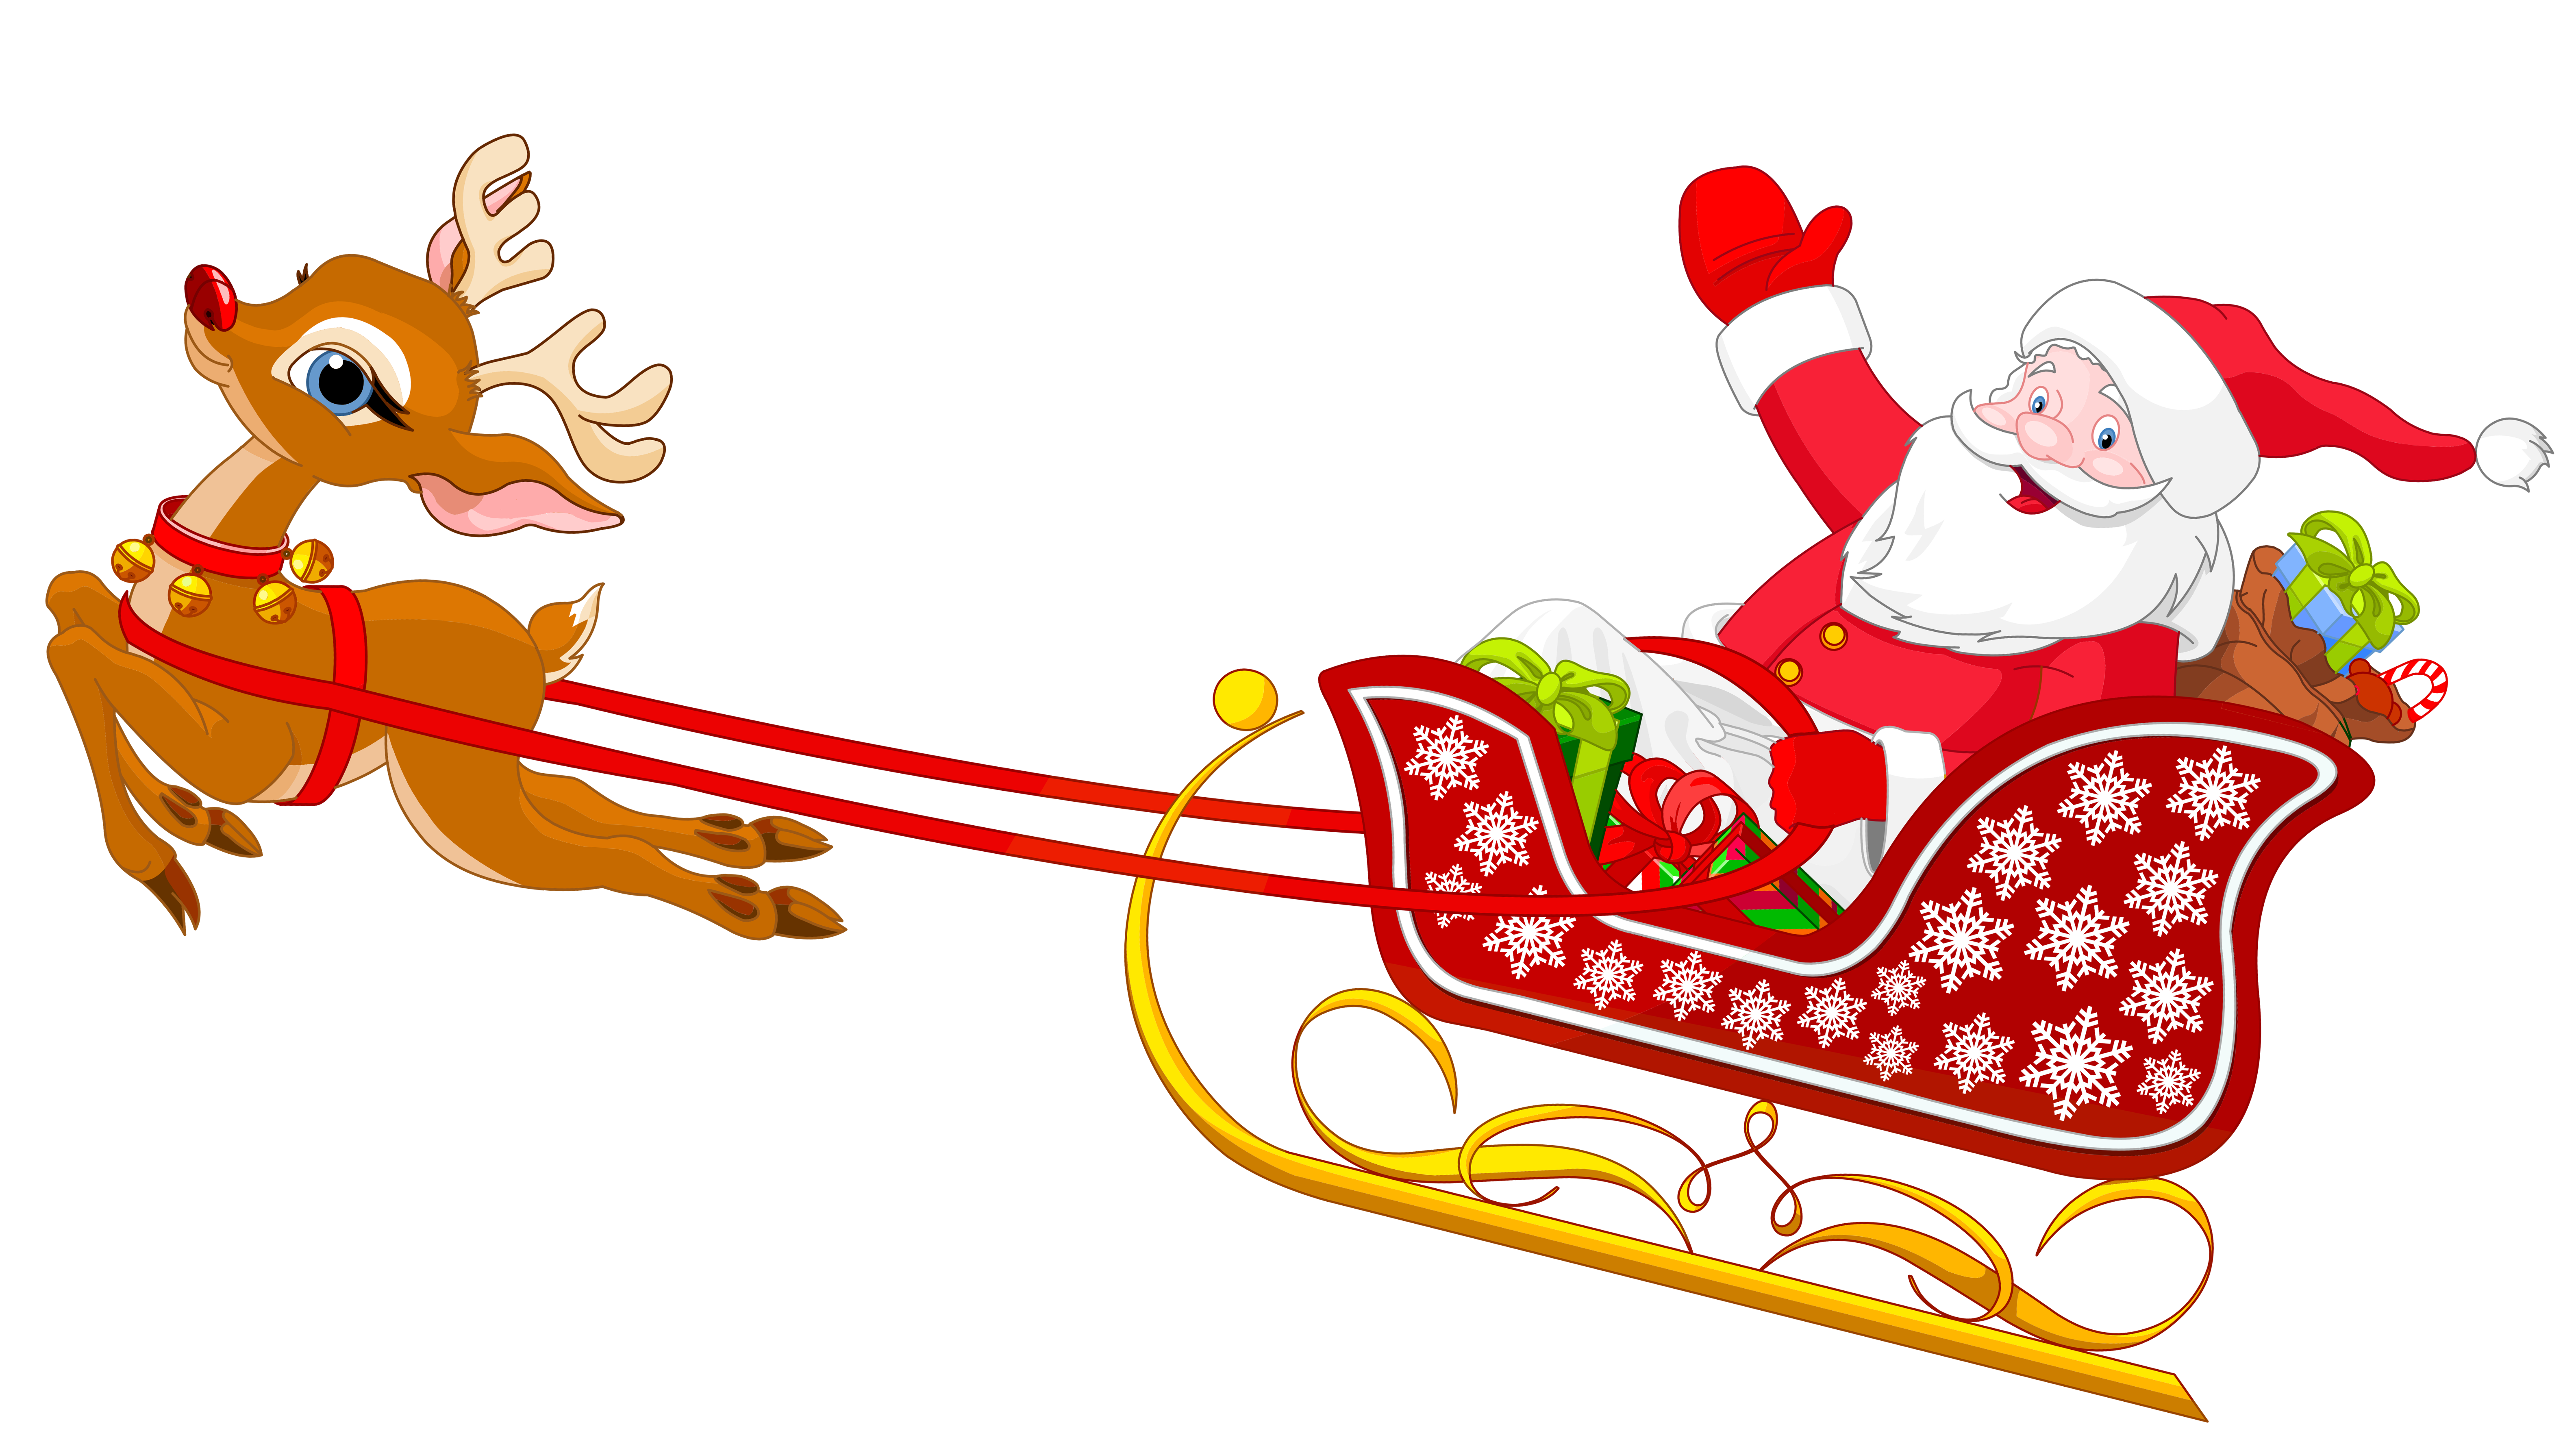 santa and reindeer with sled png clipart pinterest santa rh pinterest com free santa and sleigh clipart clipart of santa and his sleigh